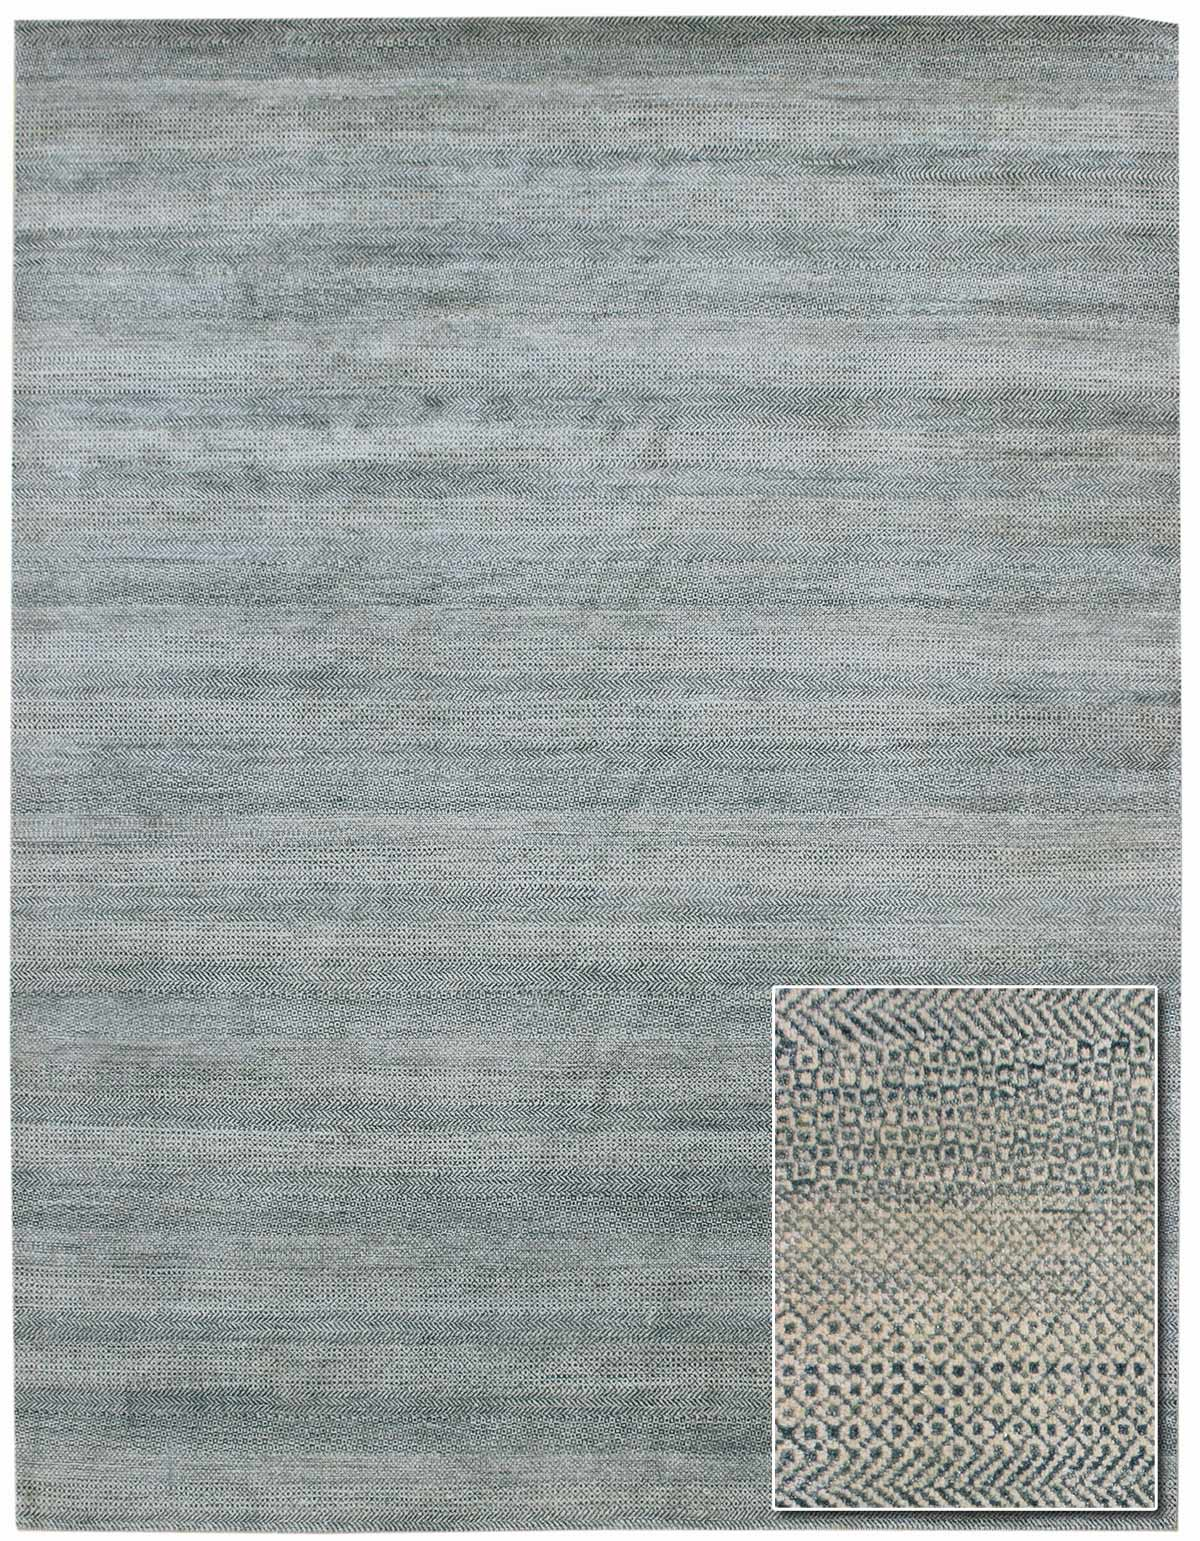 Illusion Nomad Handwoven Contemporary Rug